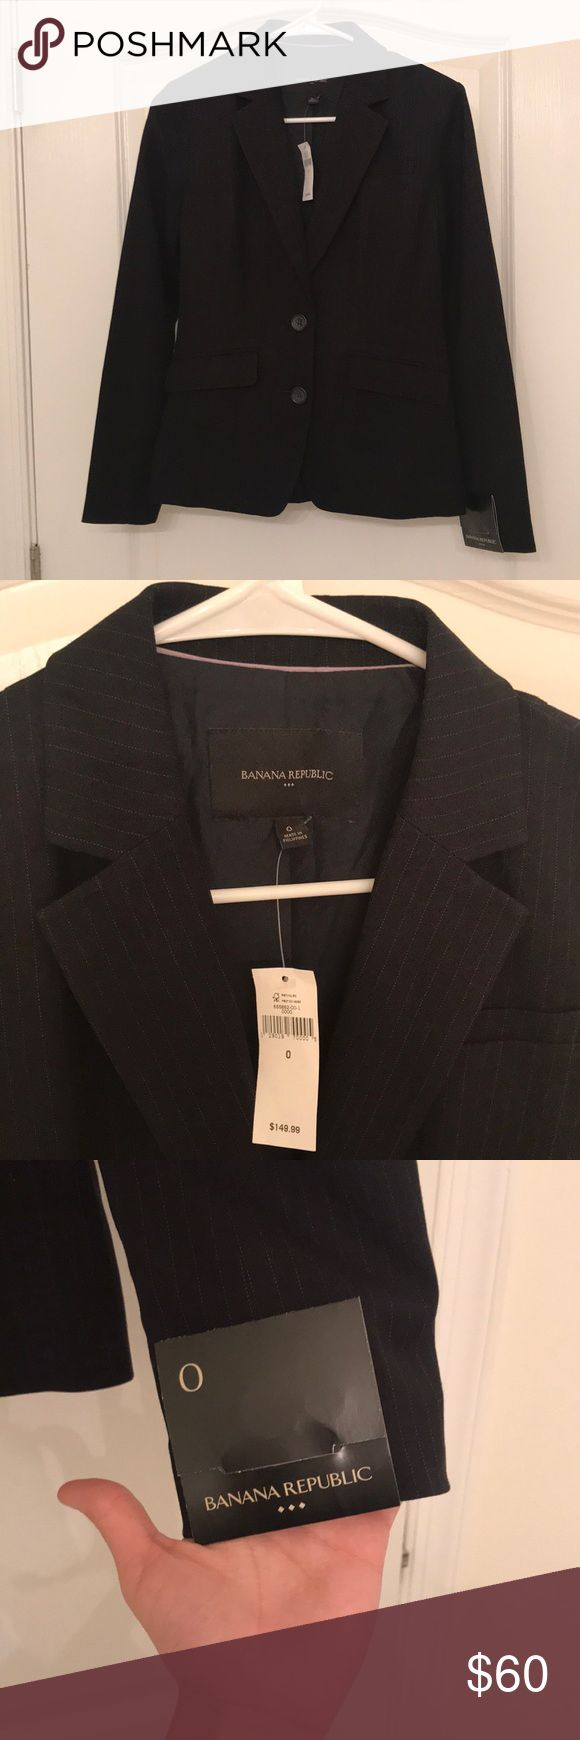 BR navy pinstripe suit jacket Never worn. Perfect condition. Navy pinstripe with a lavender detail on the inside of the lapel. All buttons and stitching intact. Banana Republic Jackets & Coats Blazers